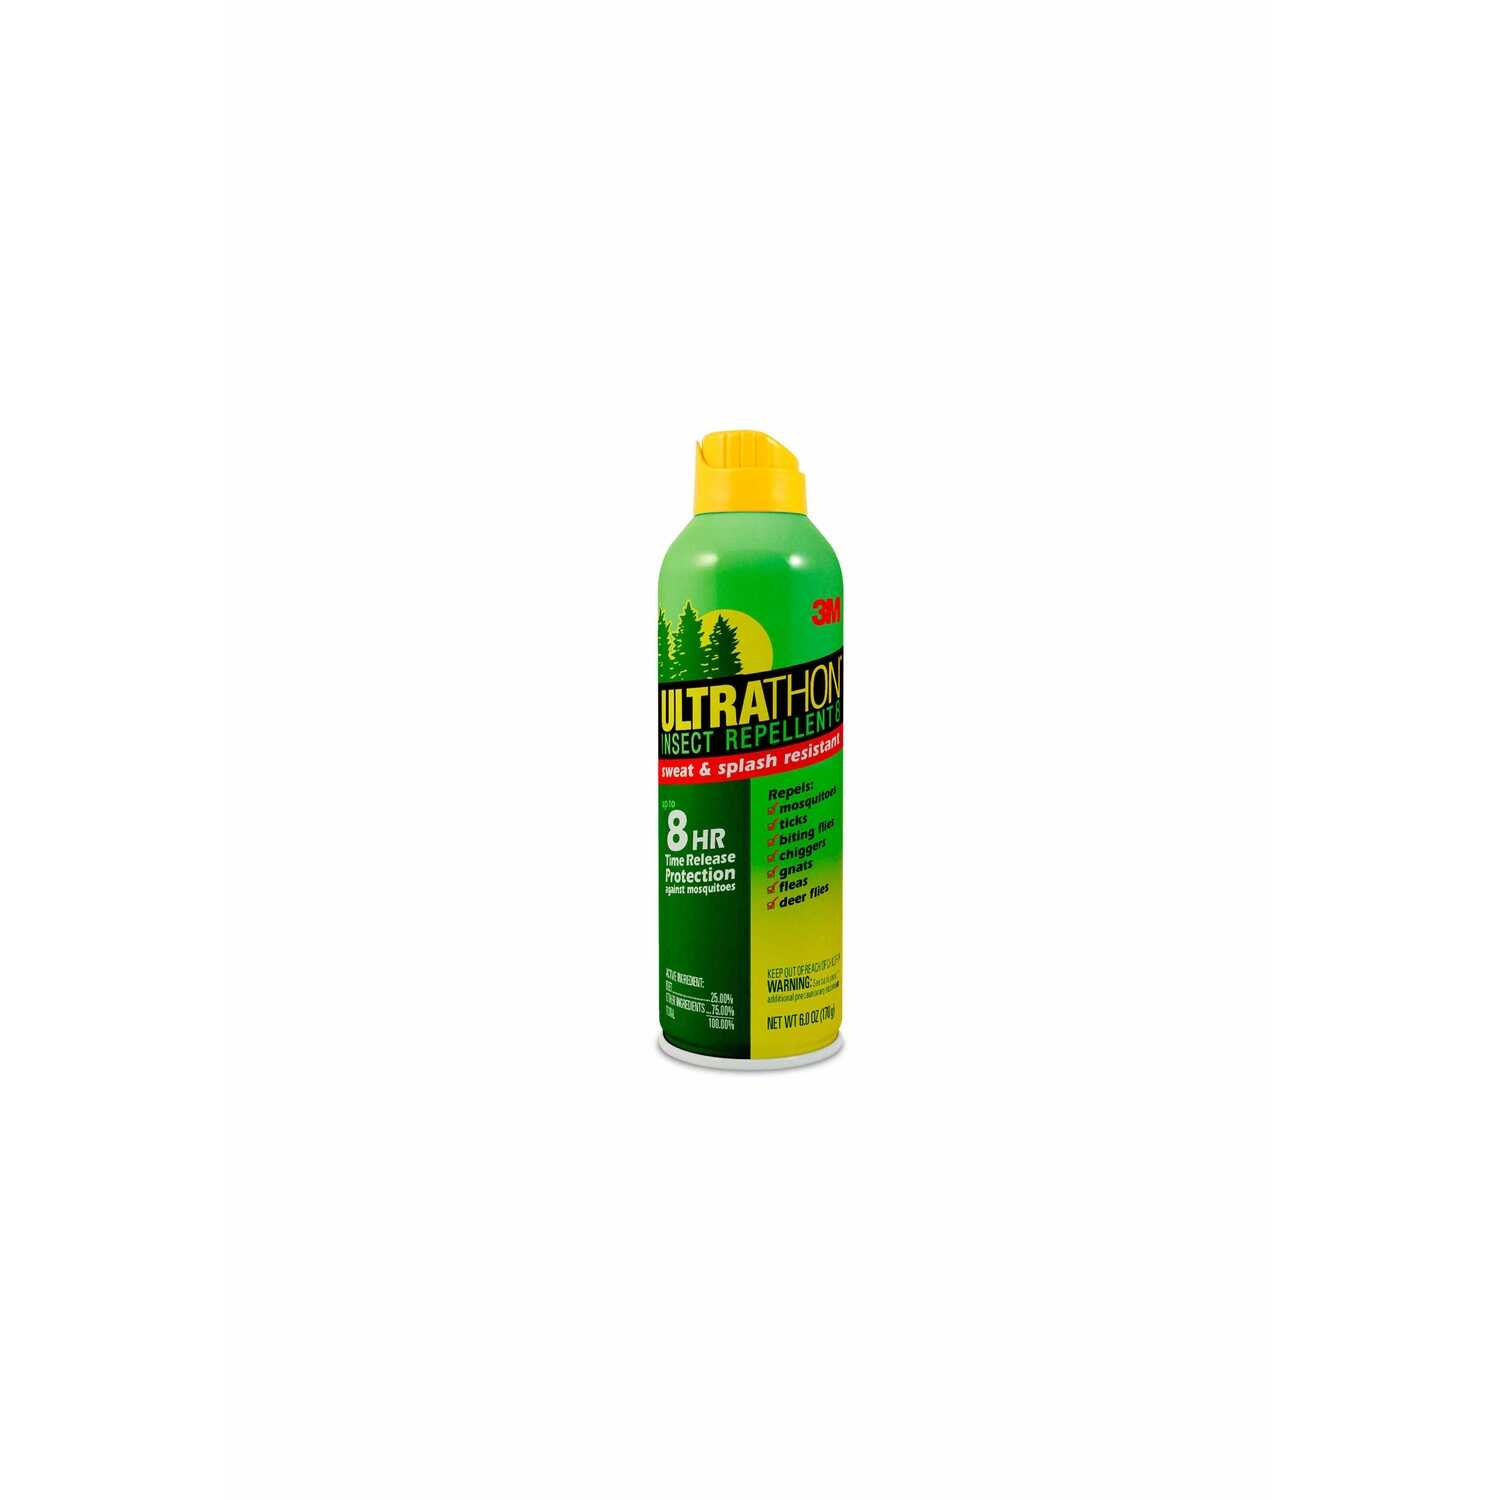 3M  Ultrathon  Insect Repellent  Liquid  For Mosquitoes/Ticks 6 oz.